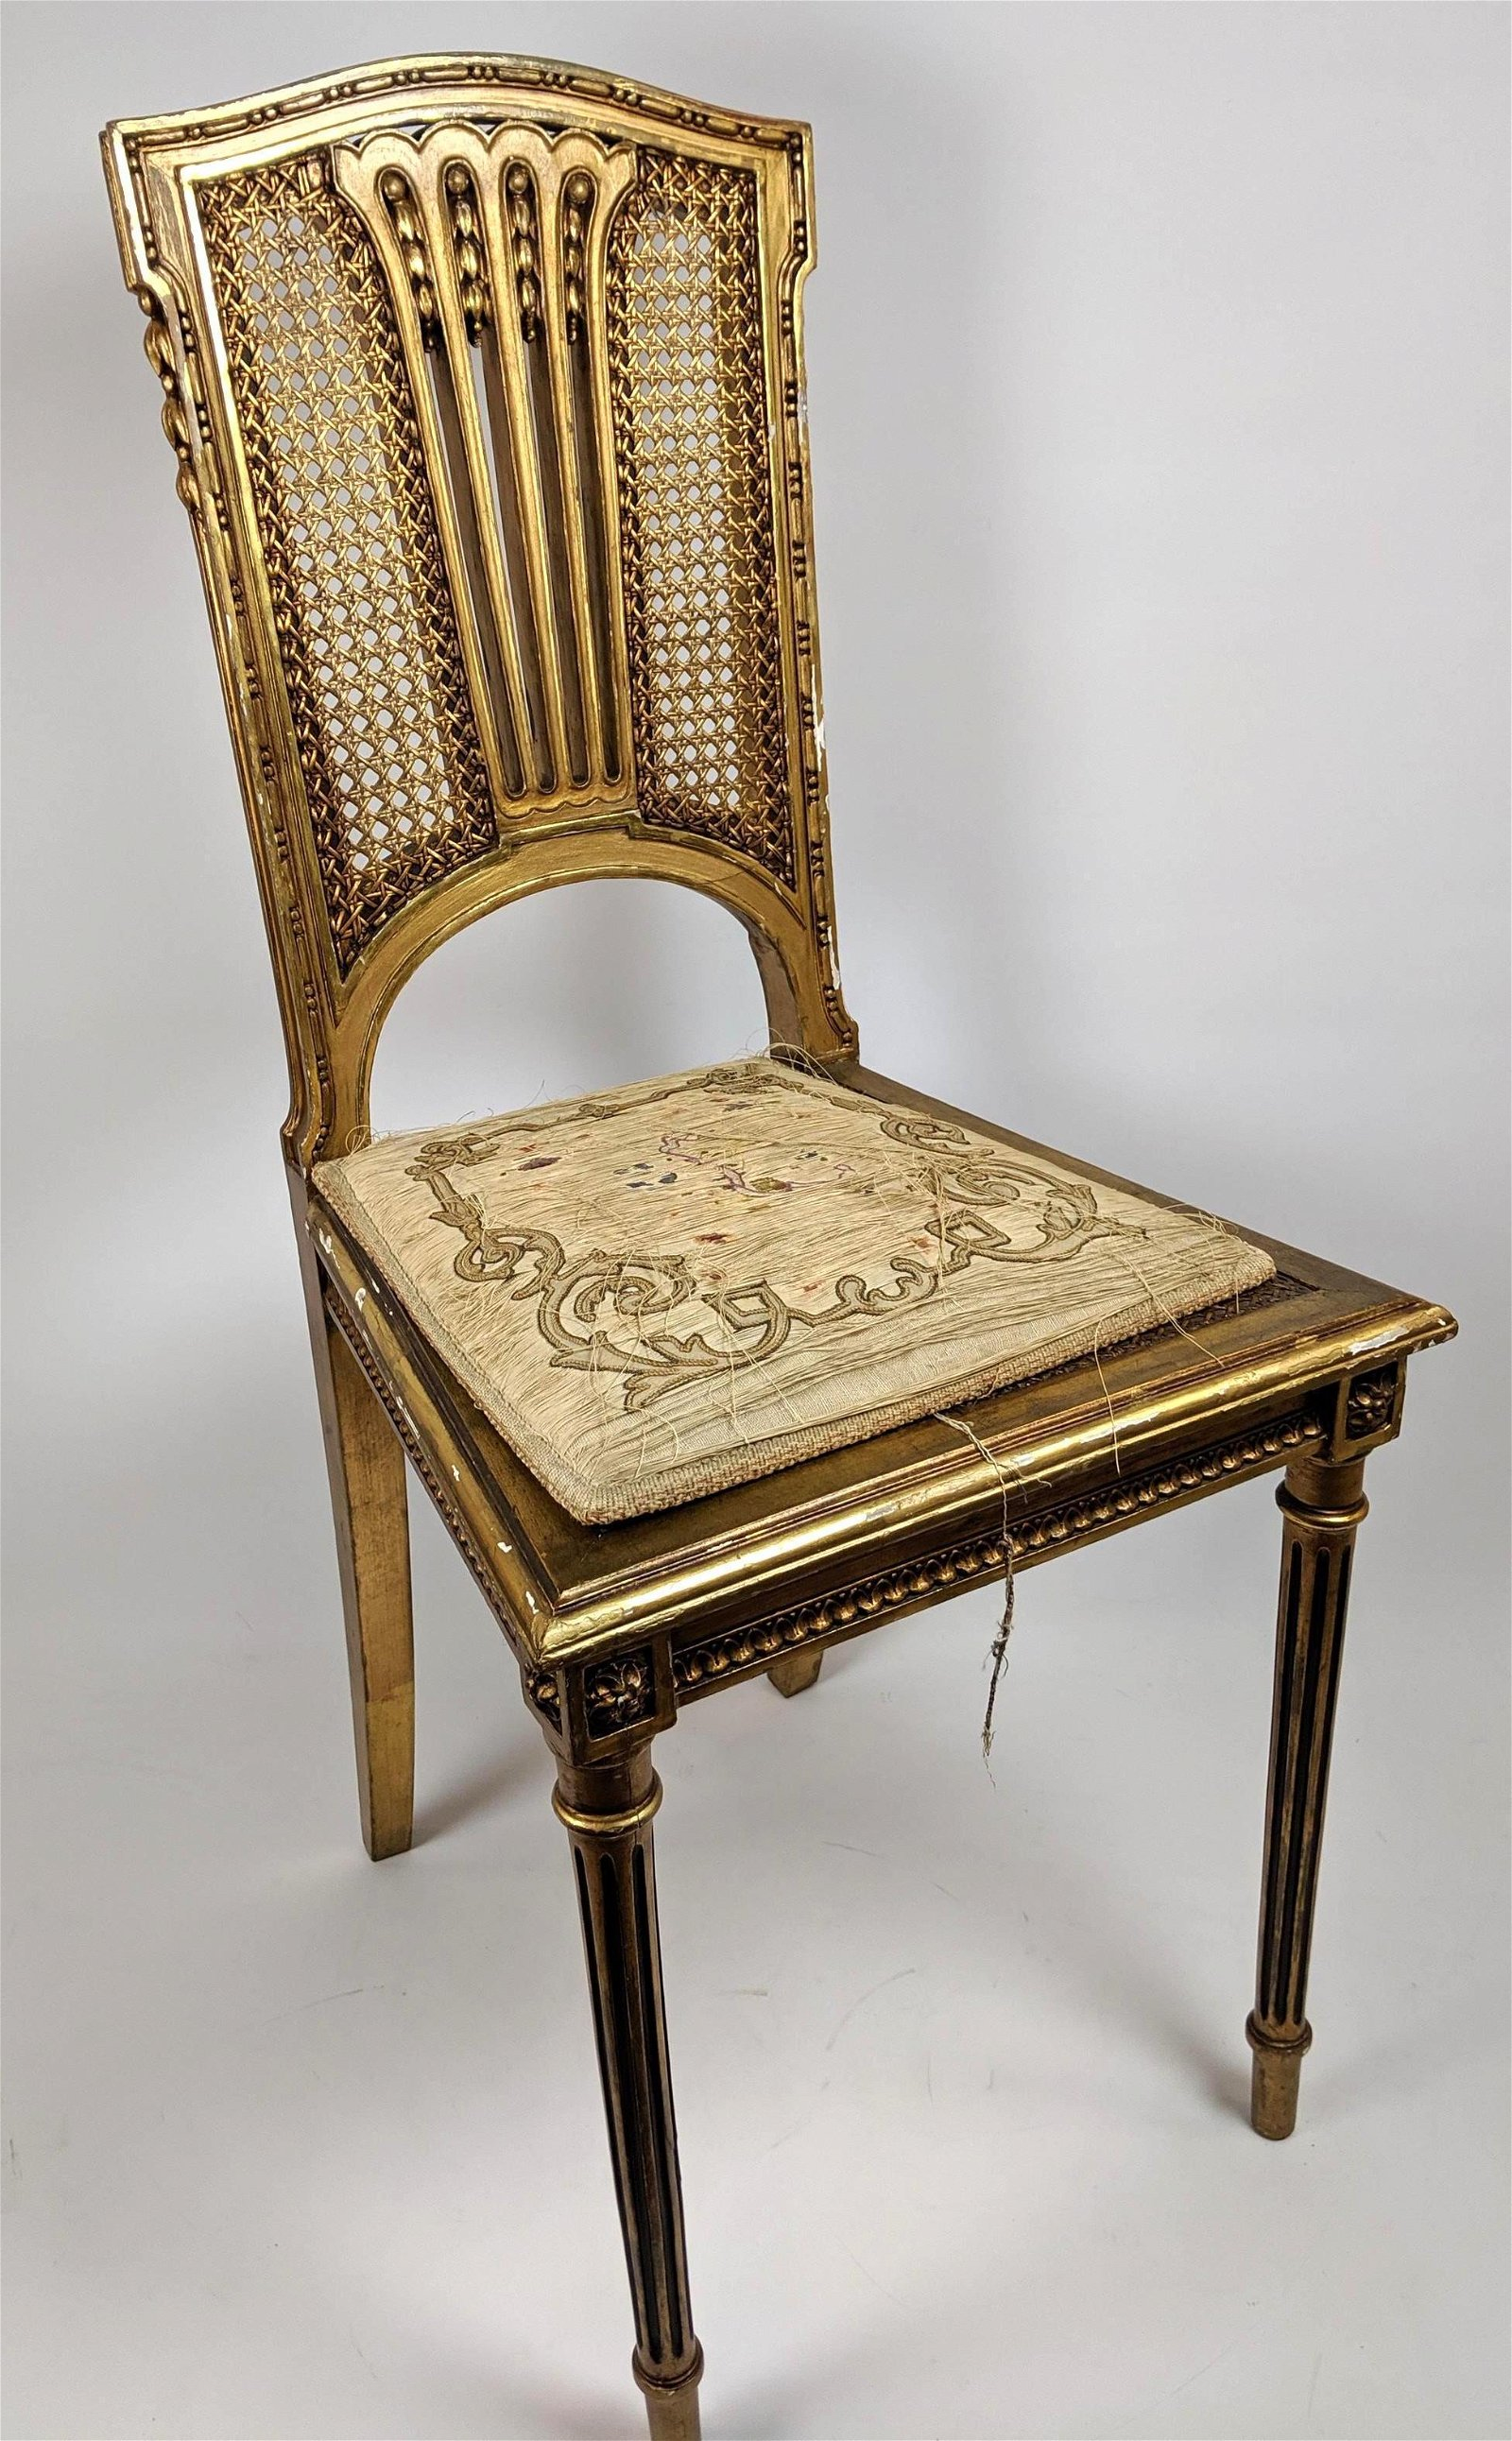 Vintage Gilt Carved Wood French Side Chair. Fancy carve